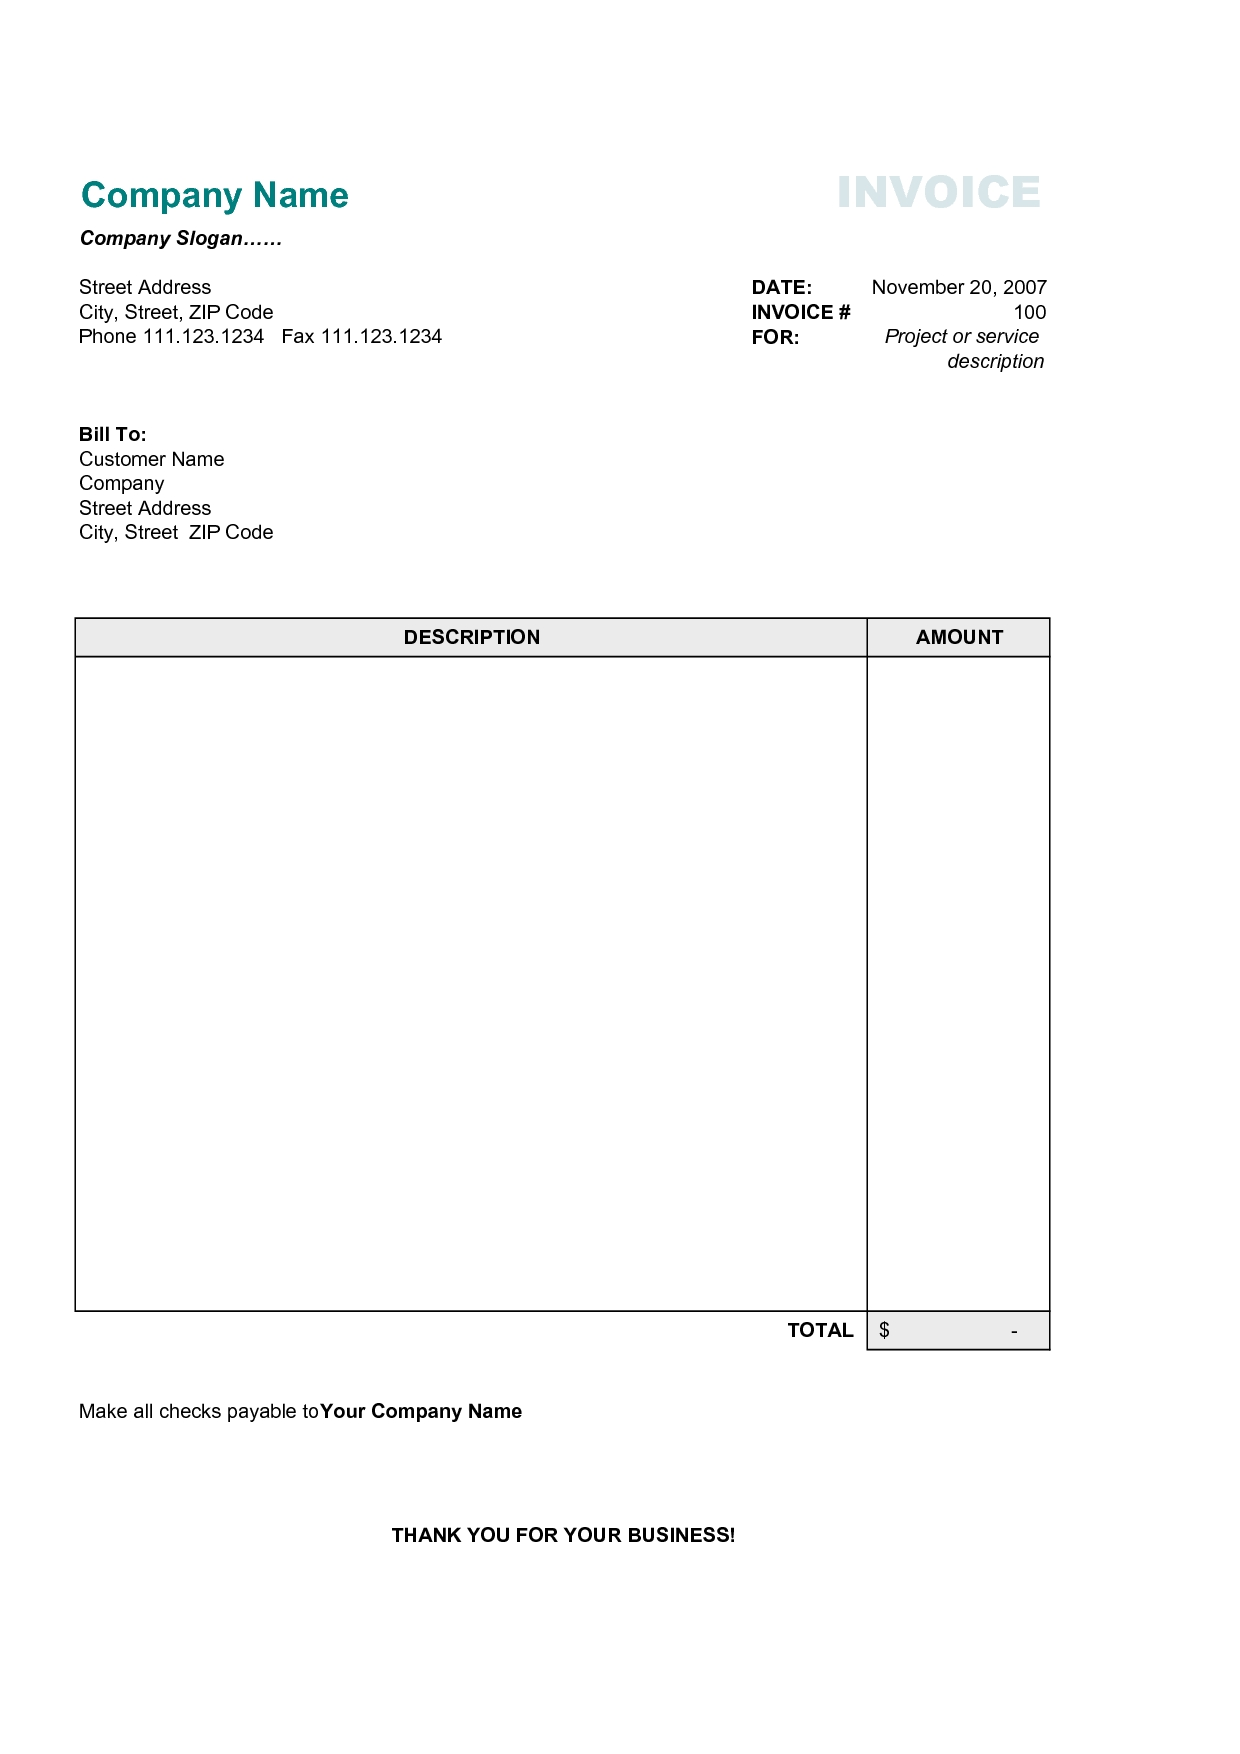 Templates Of Invoices recruiter resume samples